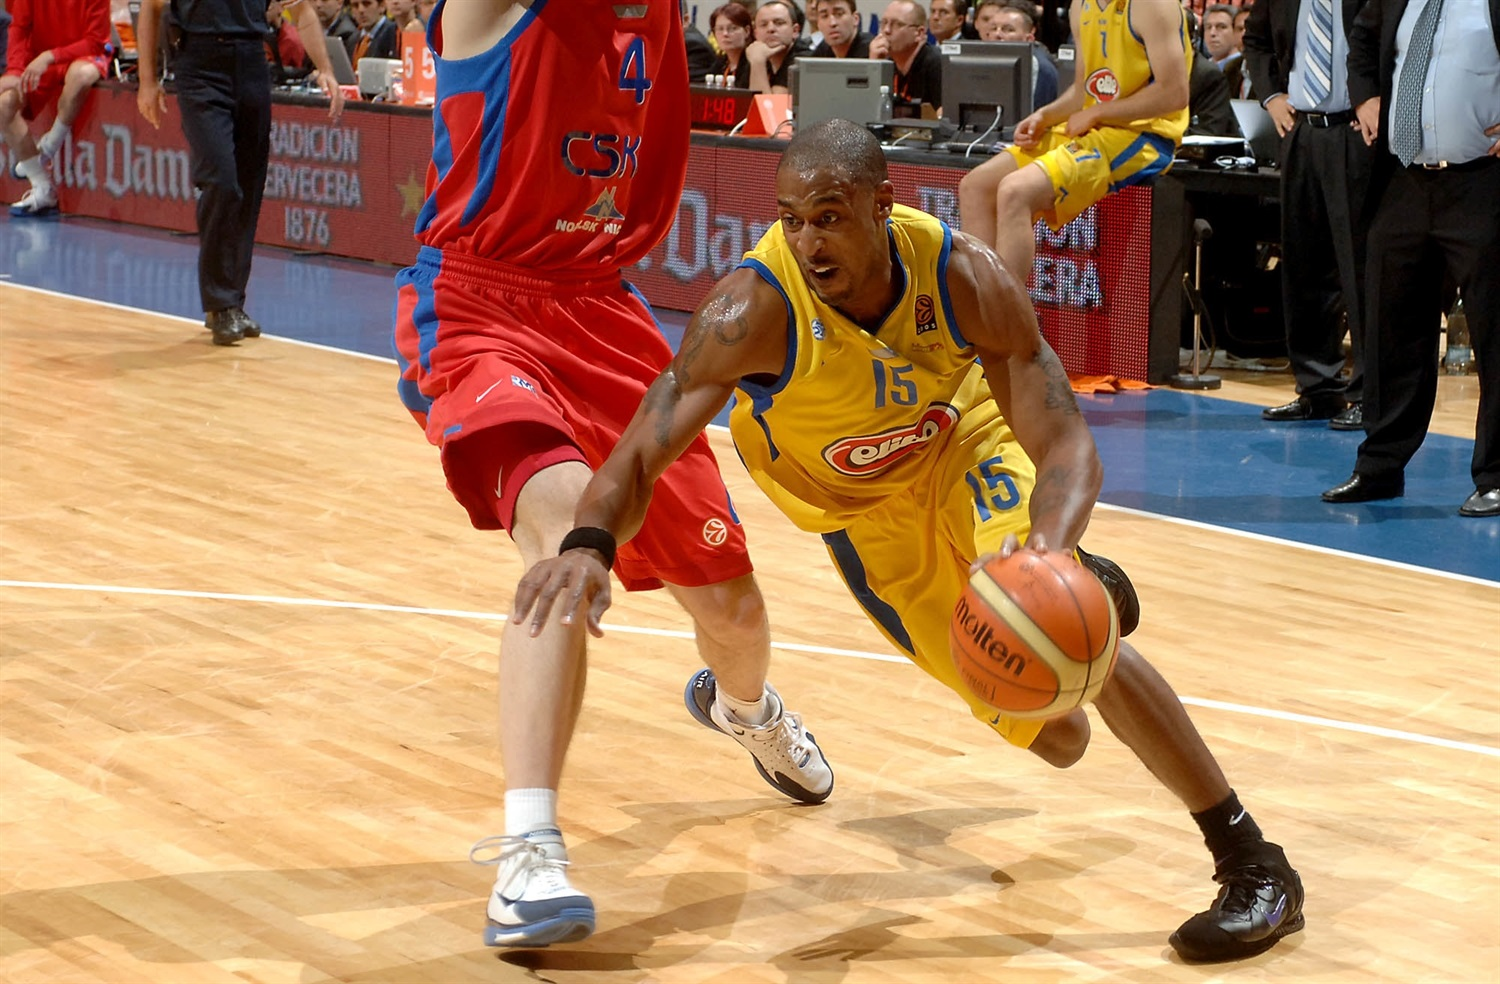 Willie Solomon - Maccabi Elite - Final Four Prague 2006 - EB19